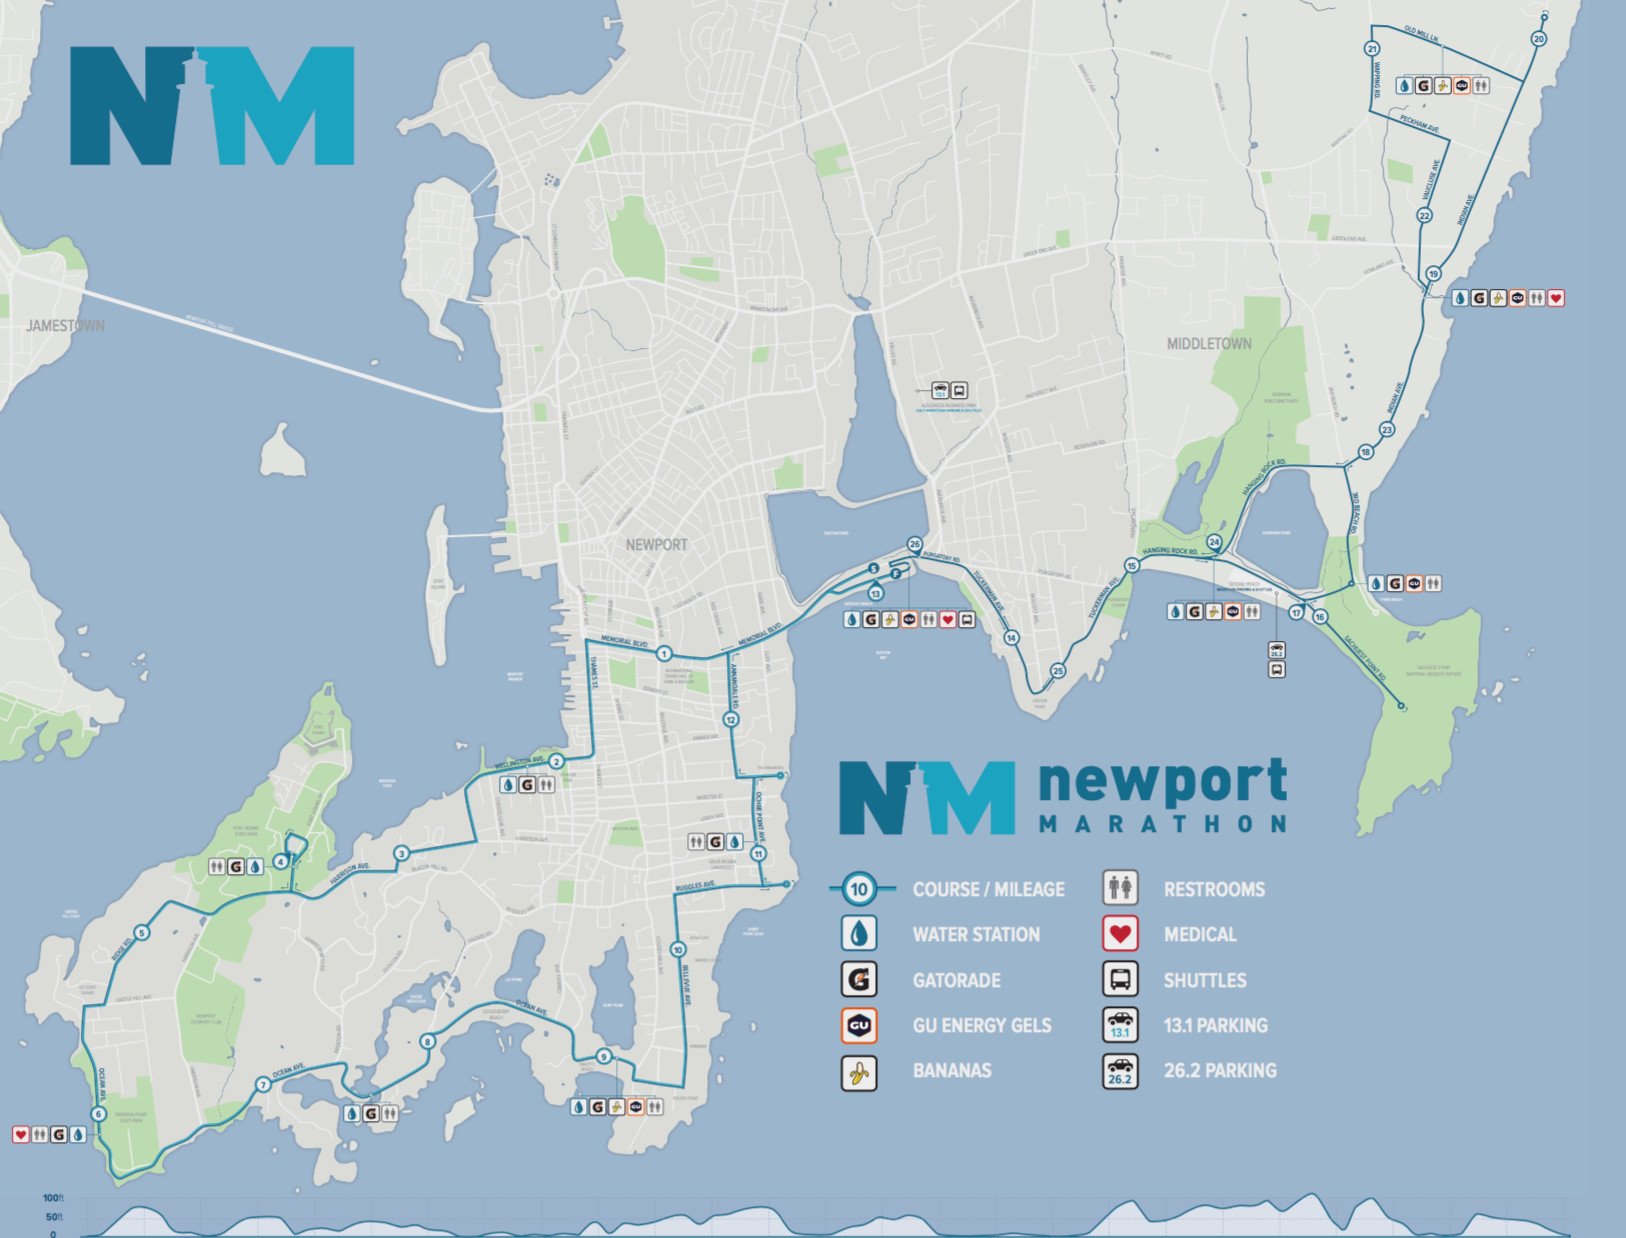 The Newport Marathon and Half Marathon